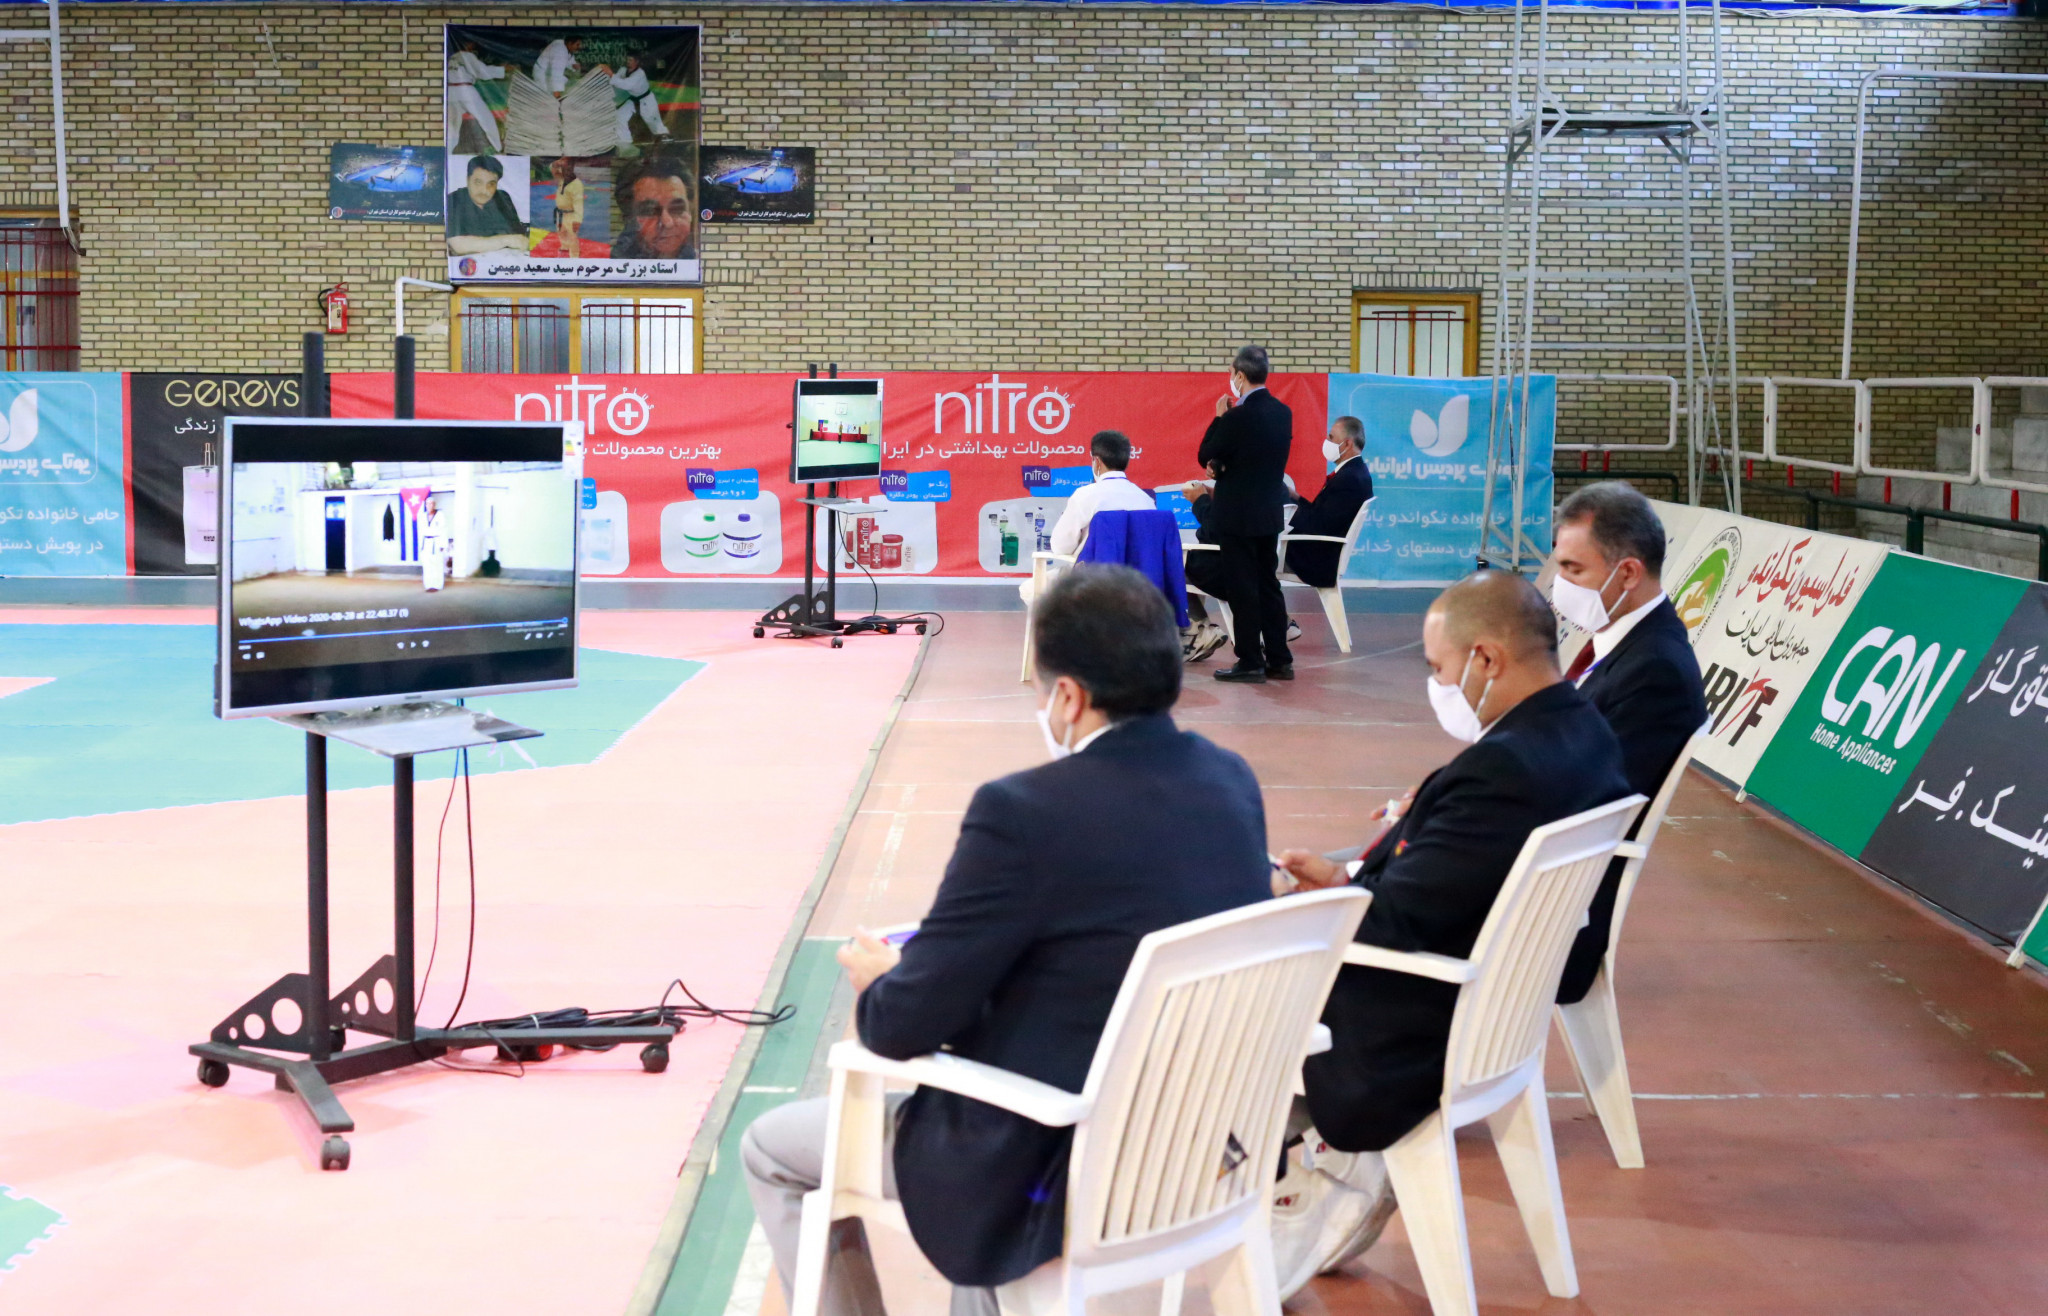 Judges watched the performances on a screen ©IRITF